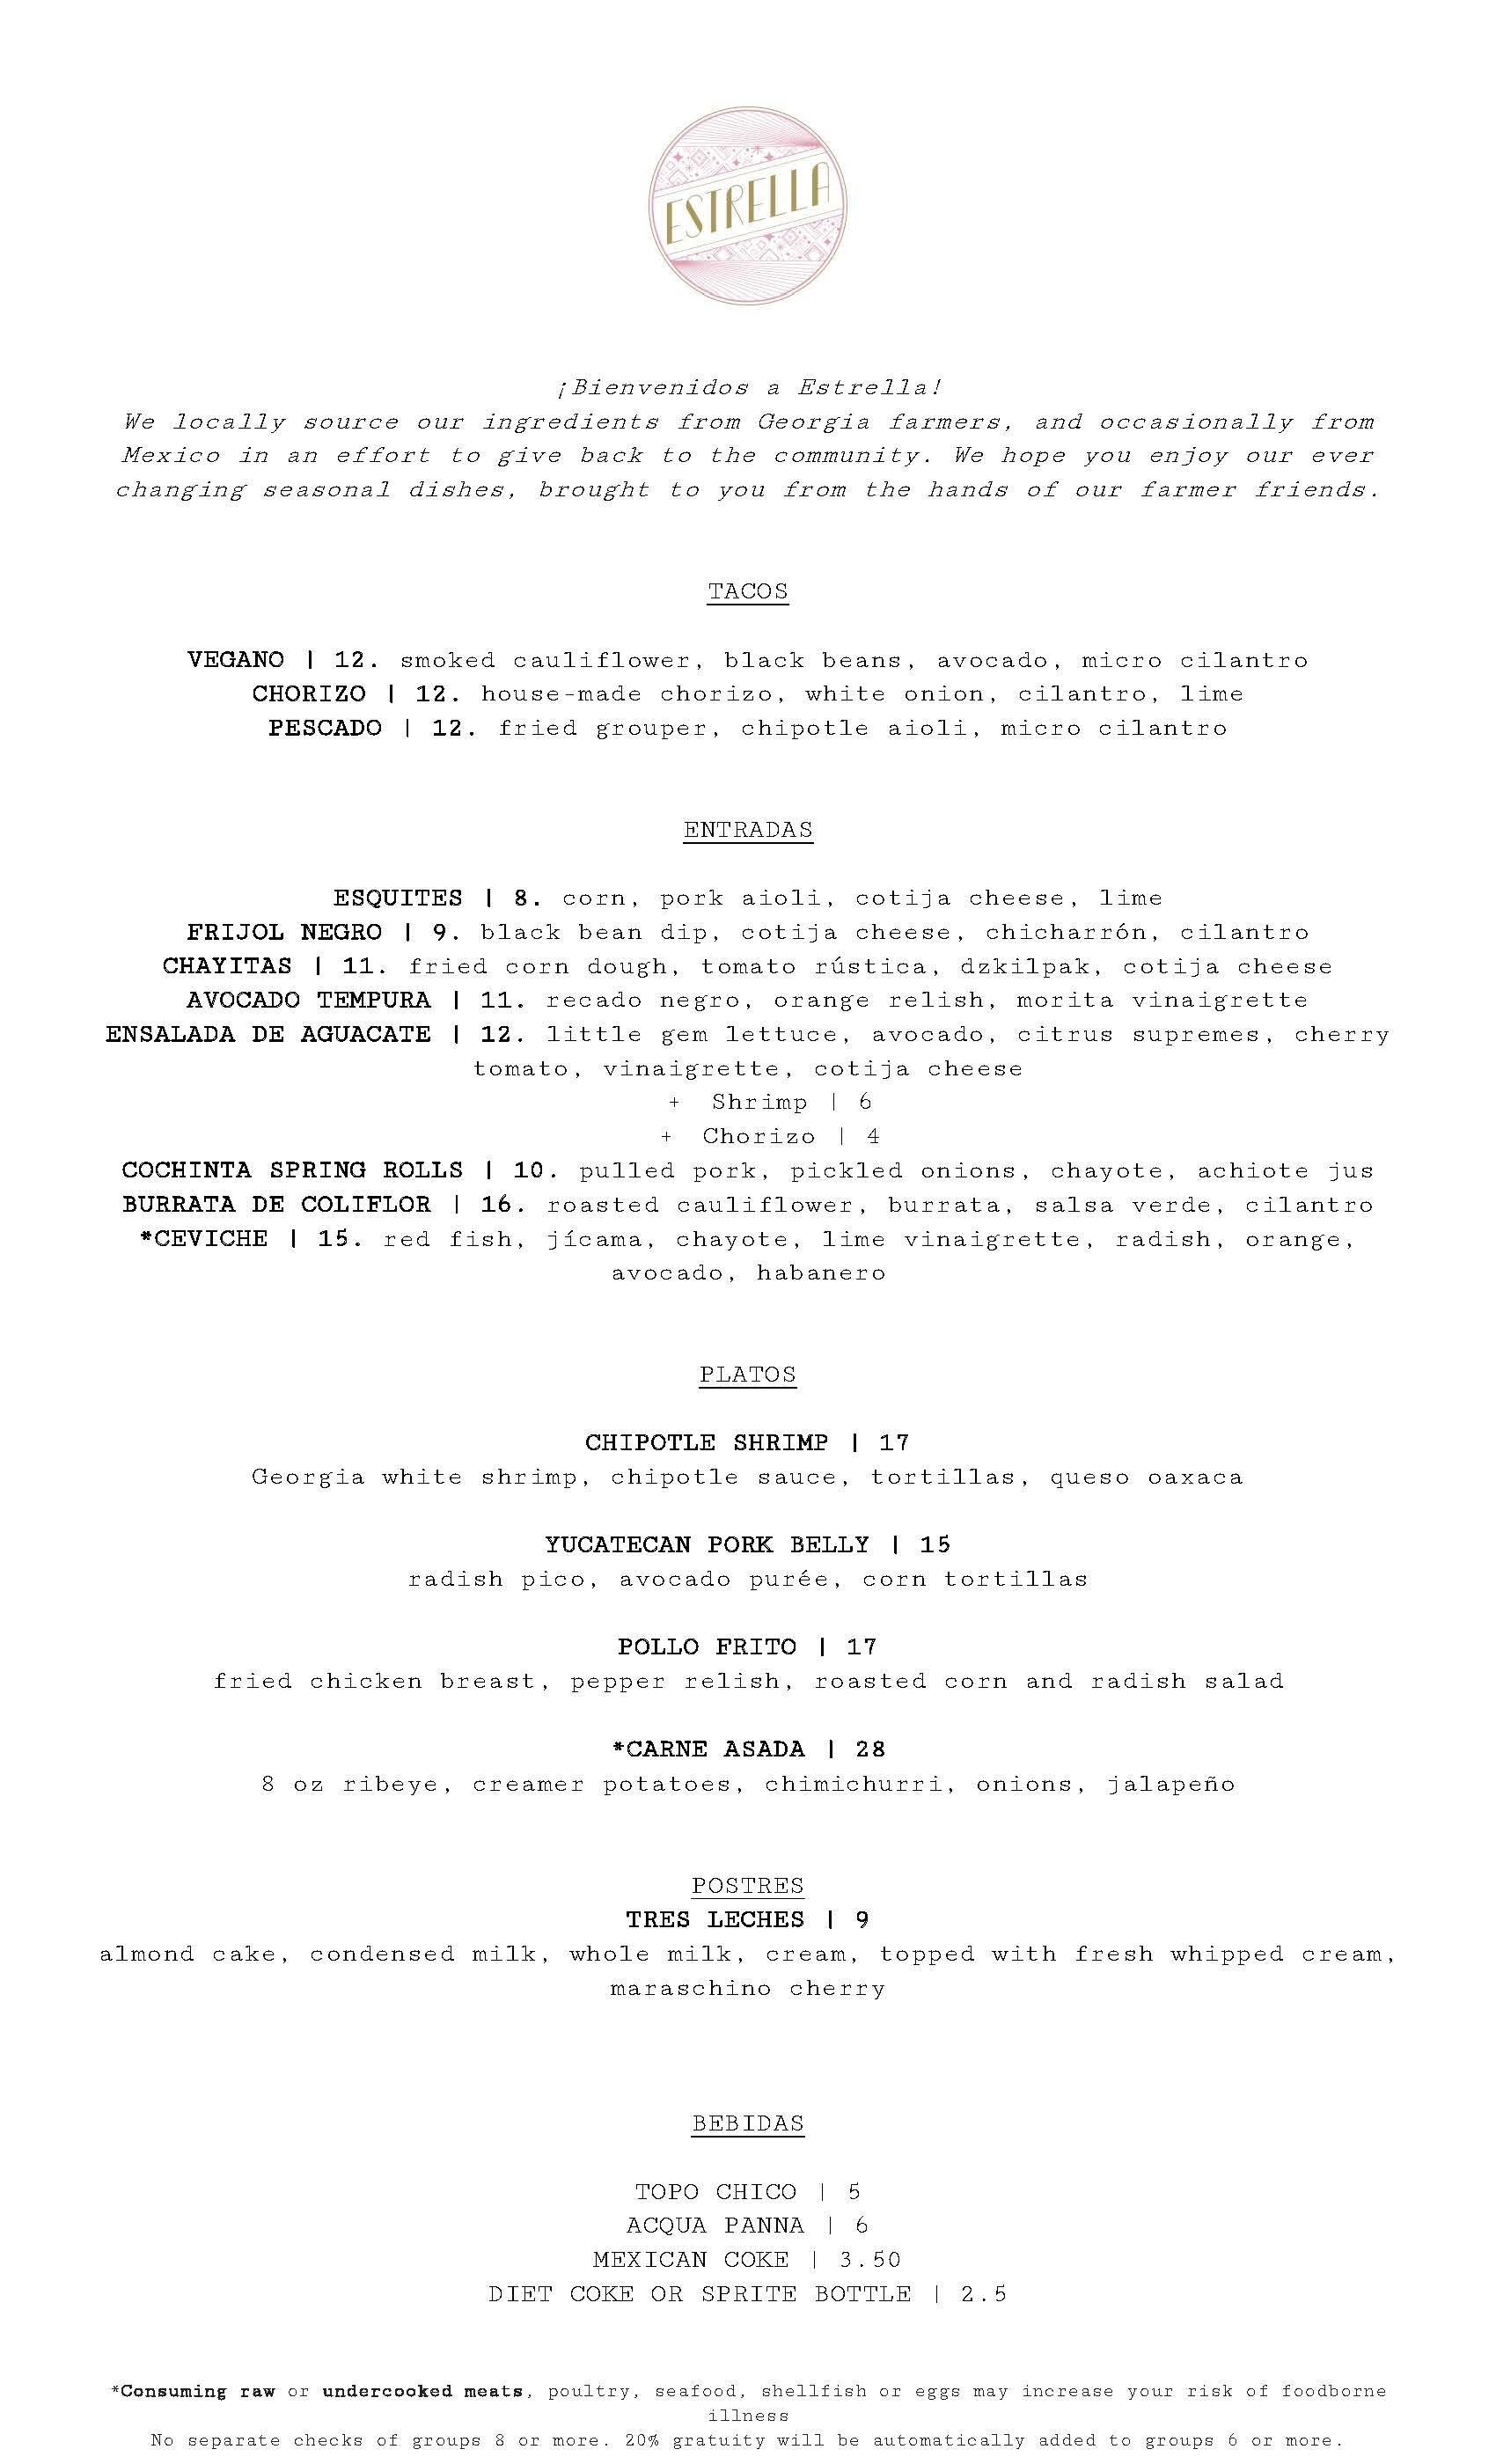 Estrella's menu changes with the season. This menu is up to date as of 5/22/19.